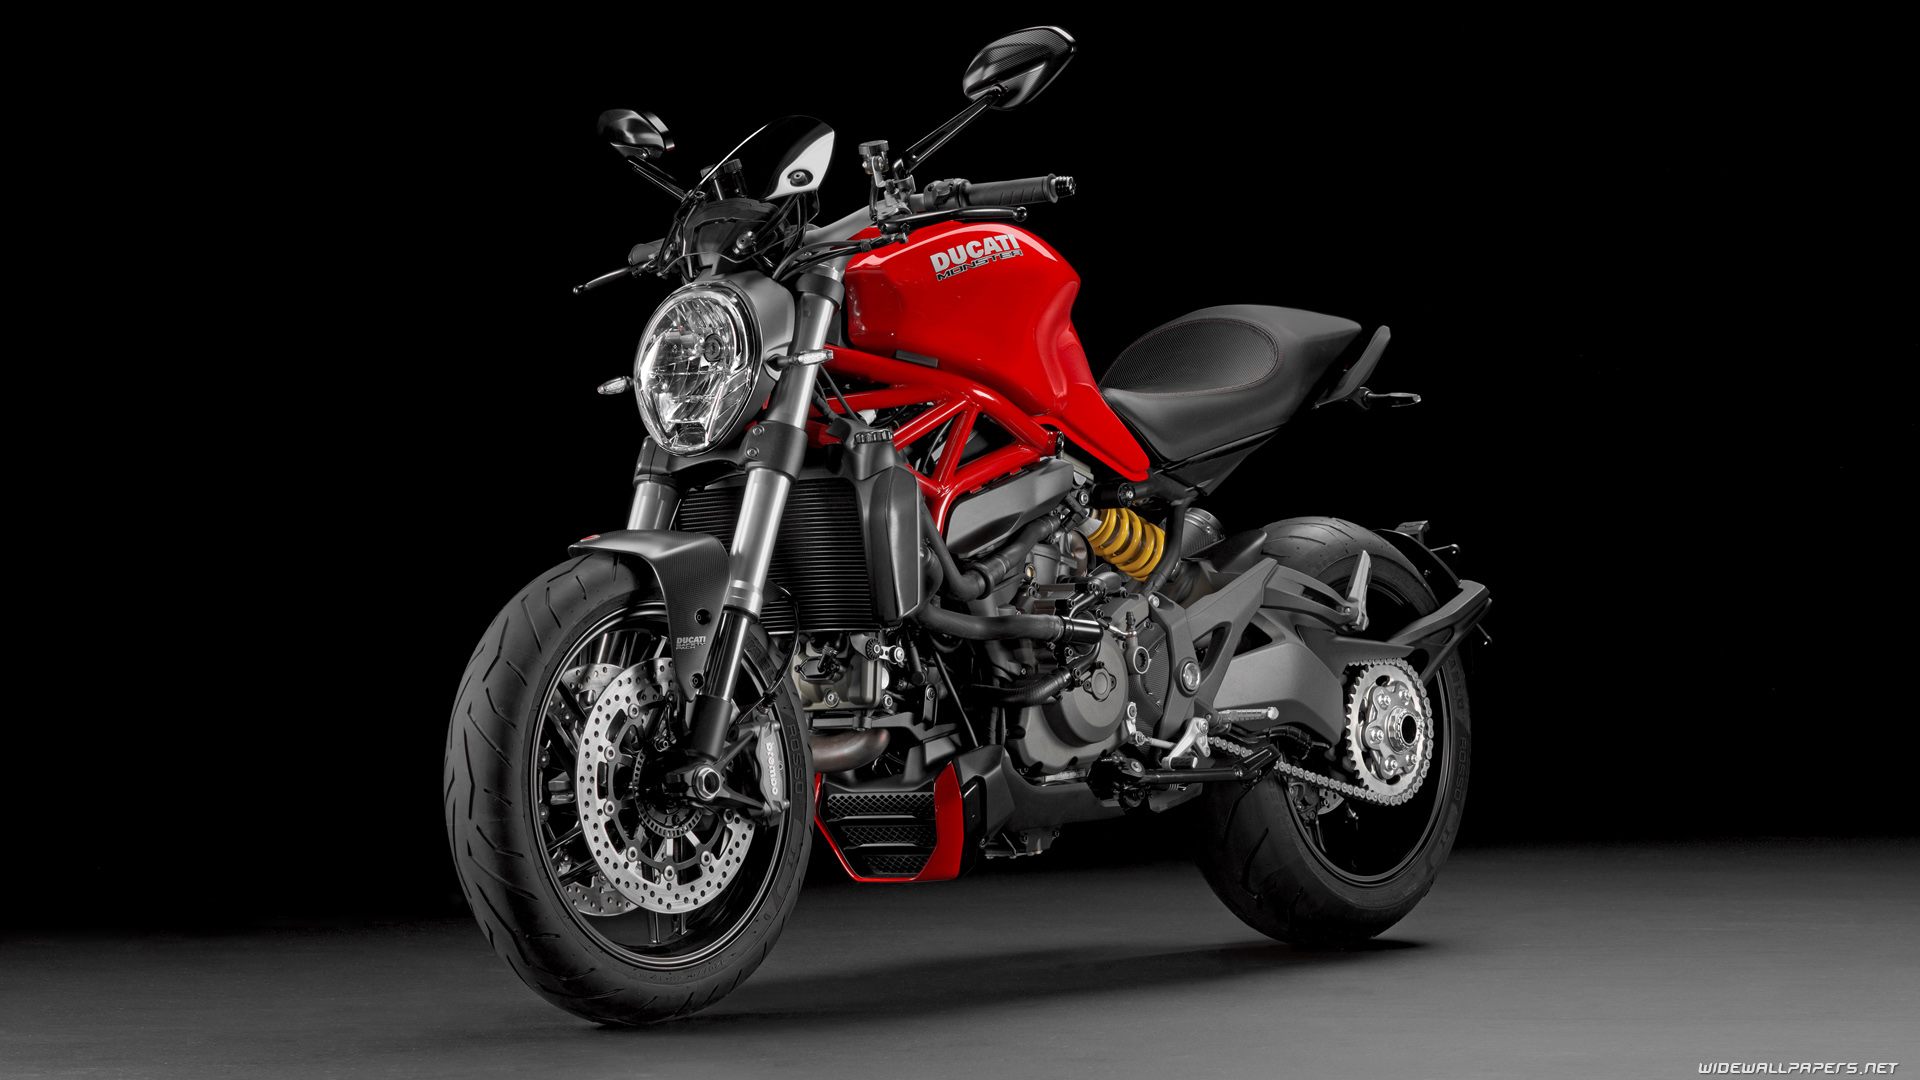 ducati bike hd wallpapers 1080p